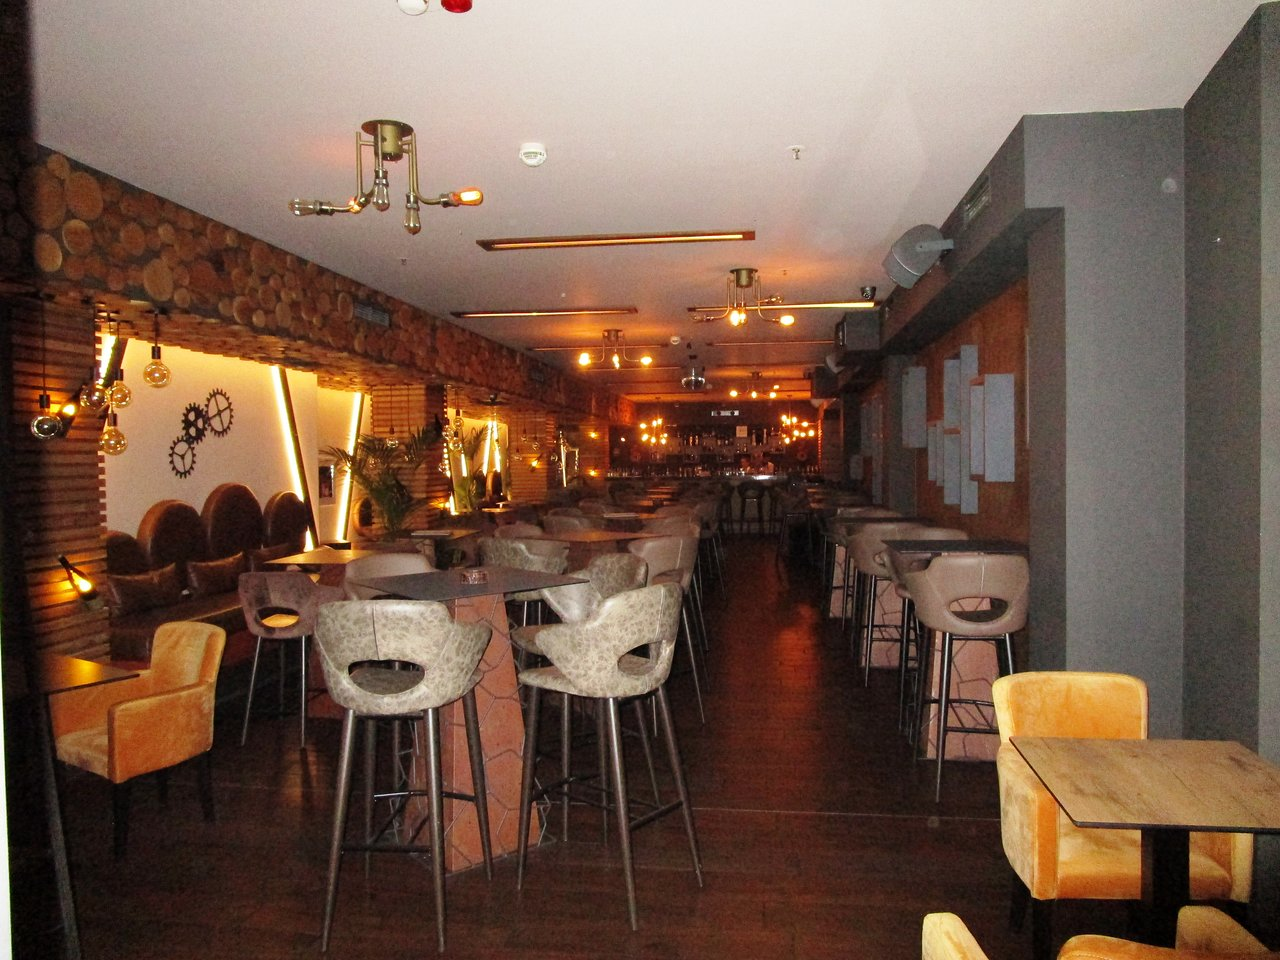 Aperitivo Bar Zagreb 2021 All You Need To Know Before You Go With Photos Tripadvisor